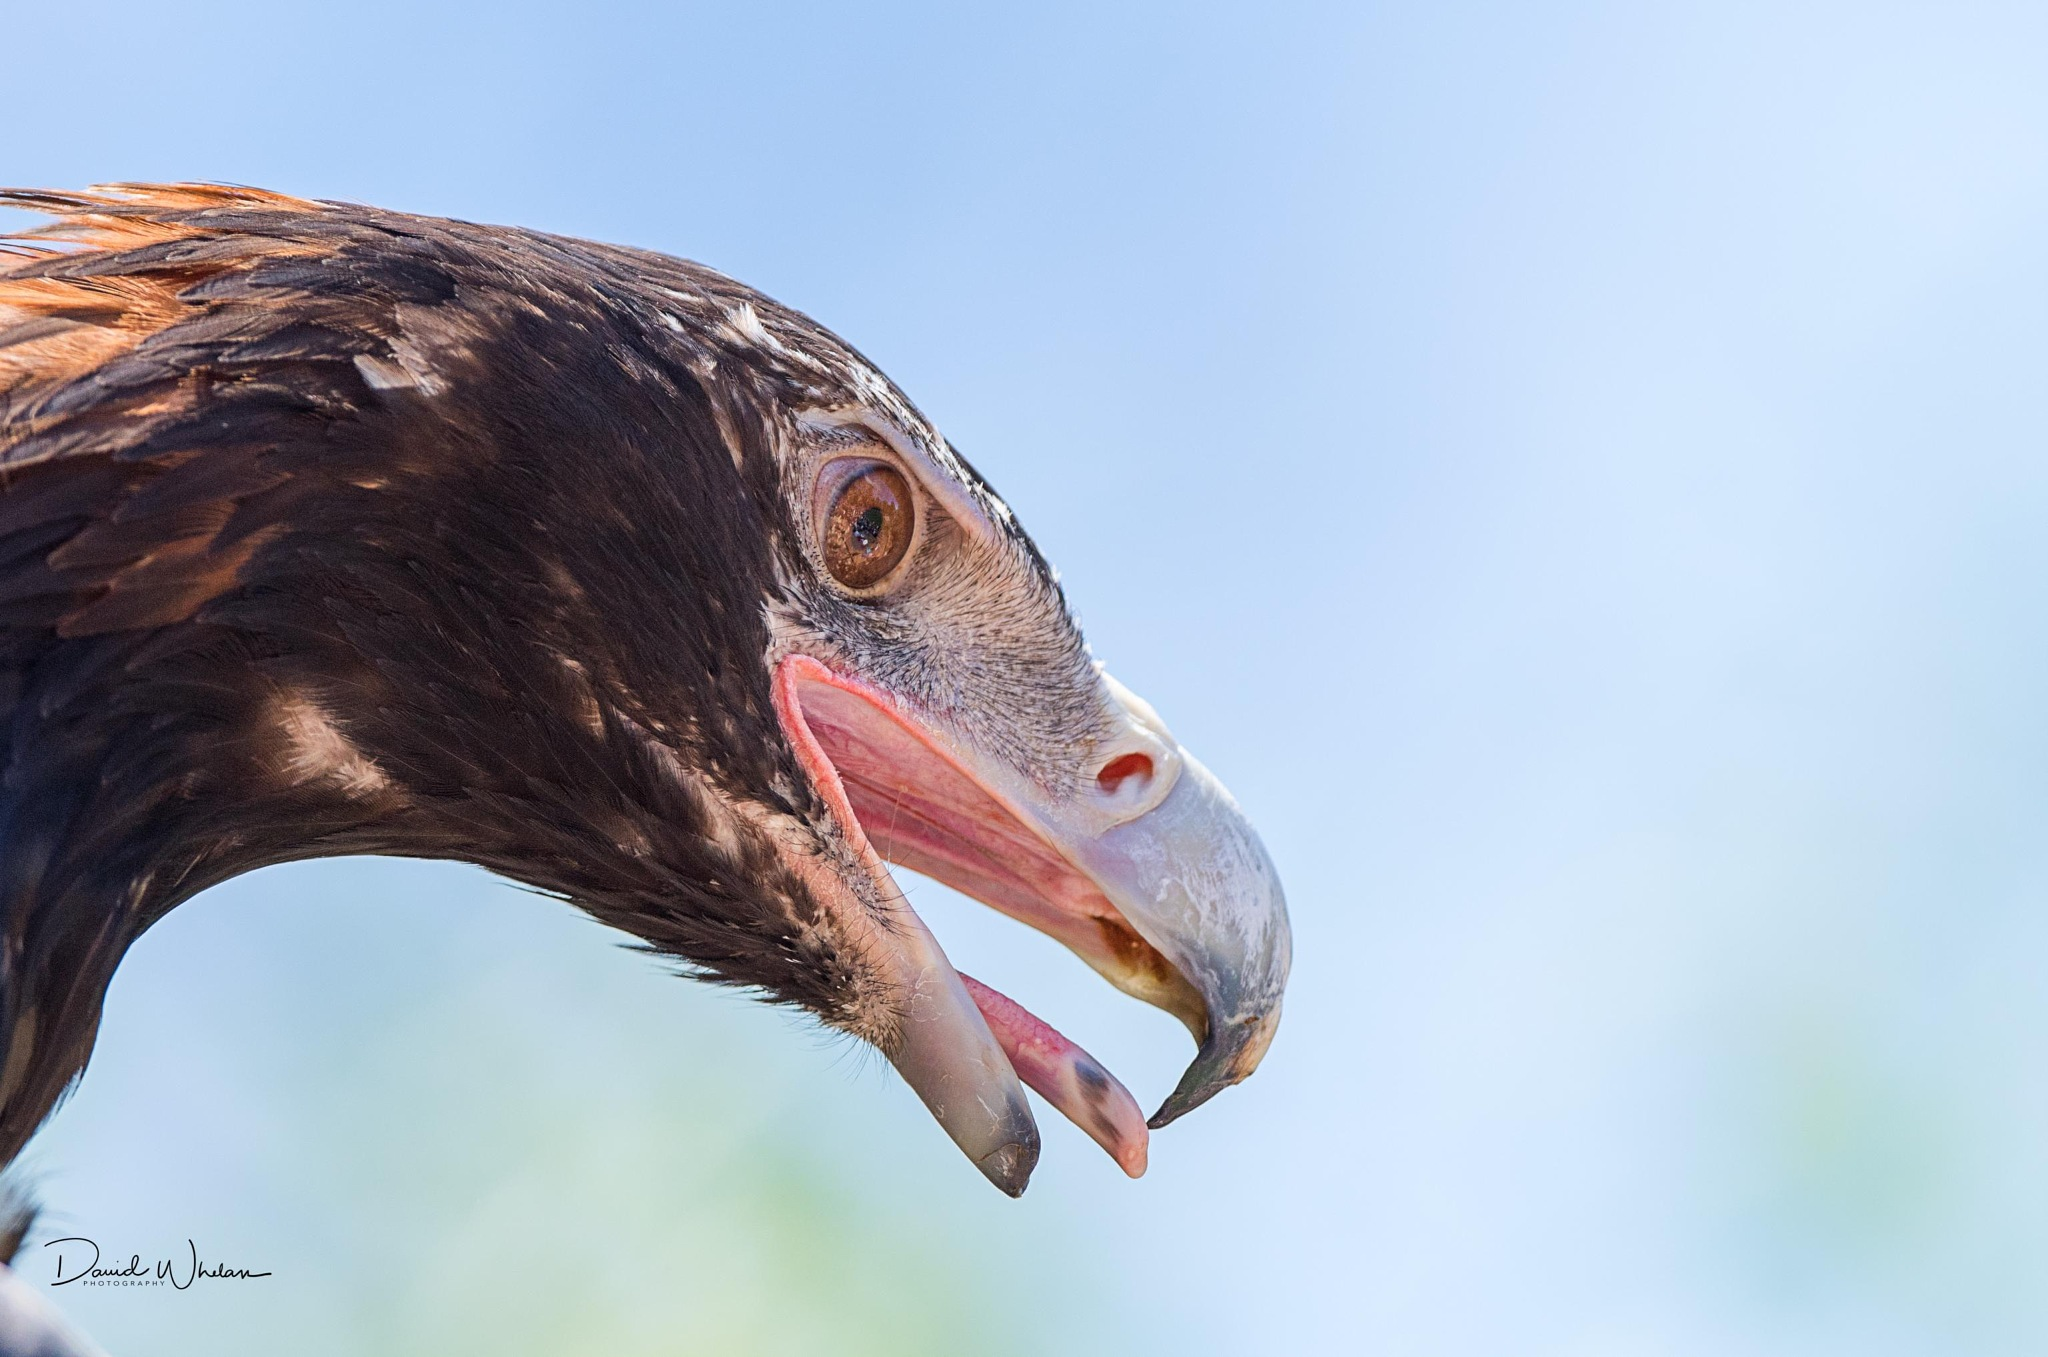 Wedge-tailed eagle by David Whelan